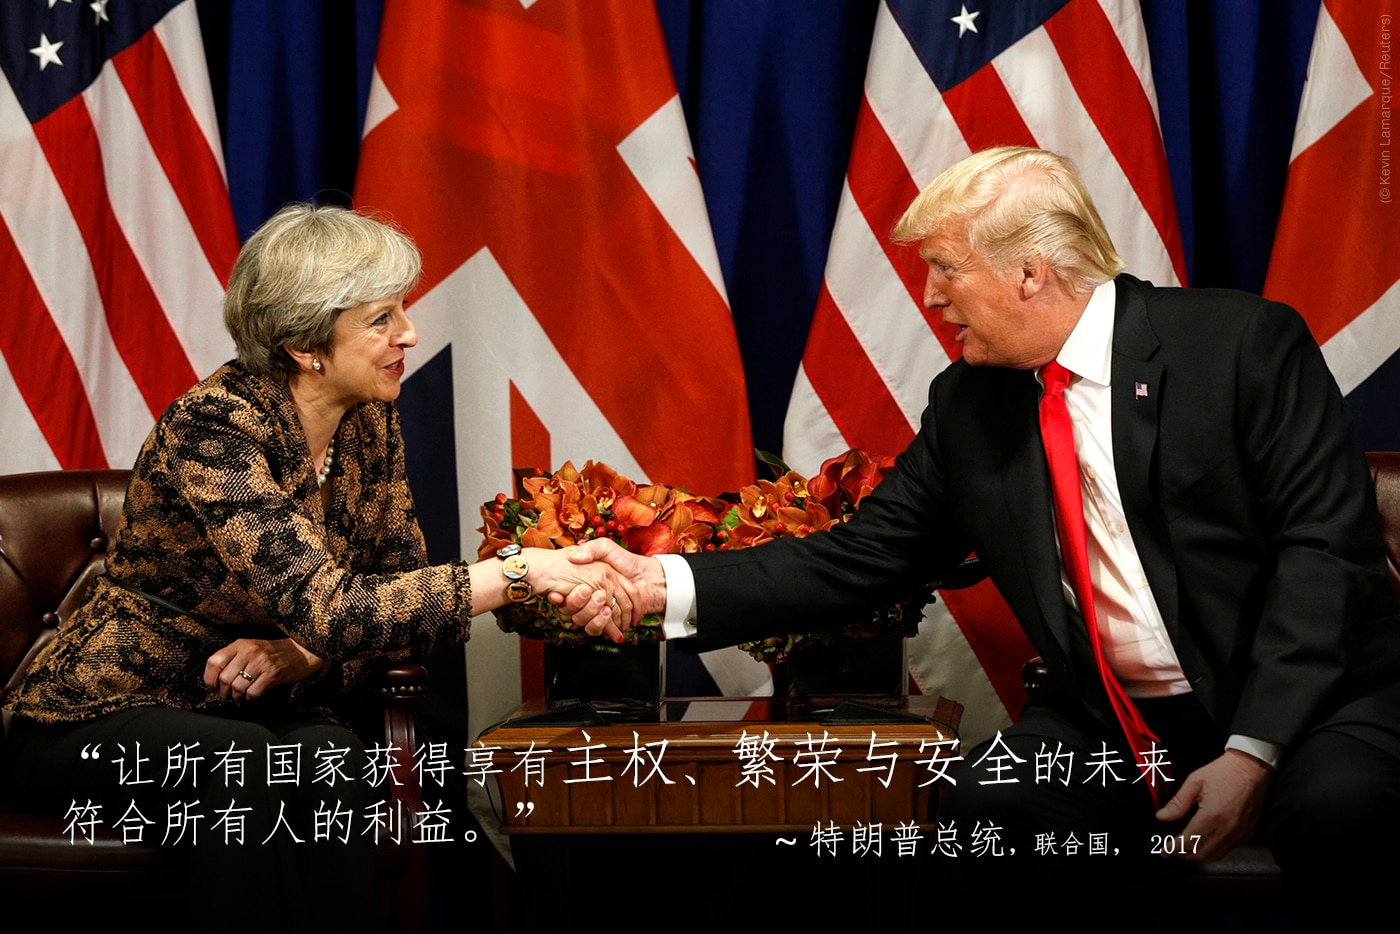 Theresa May and President Trump seated and shaking hands, with quote from President Trump overlaid (© Kevin Lamarque/Reuters)